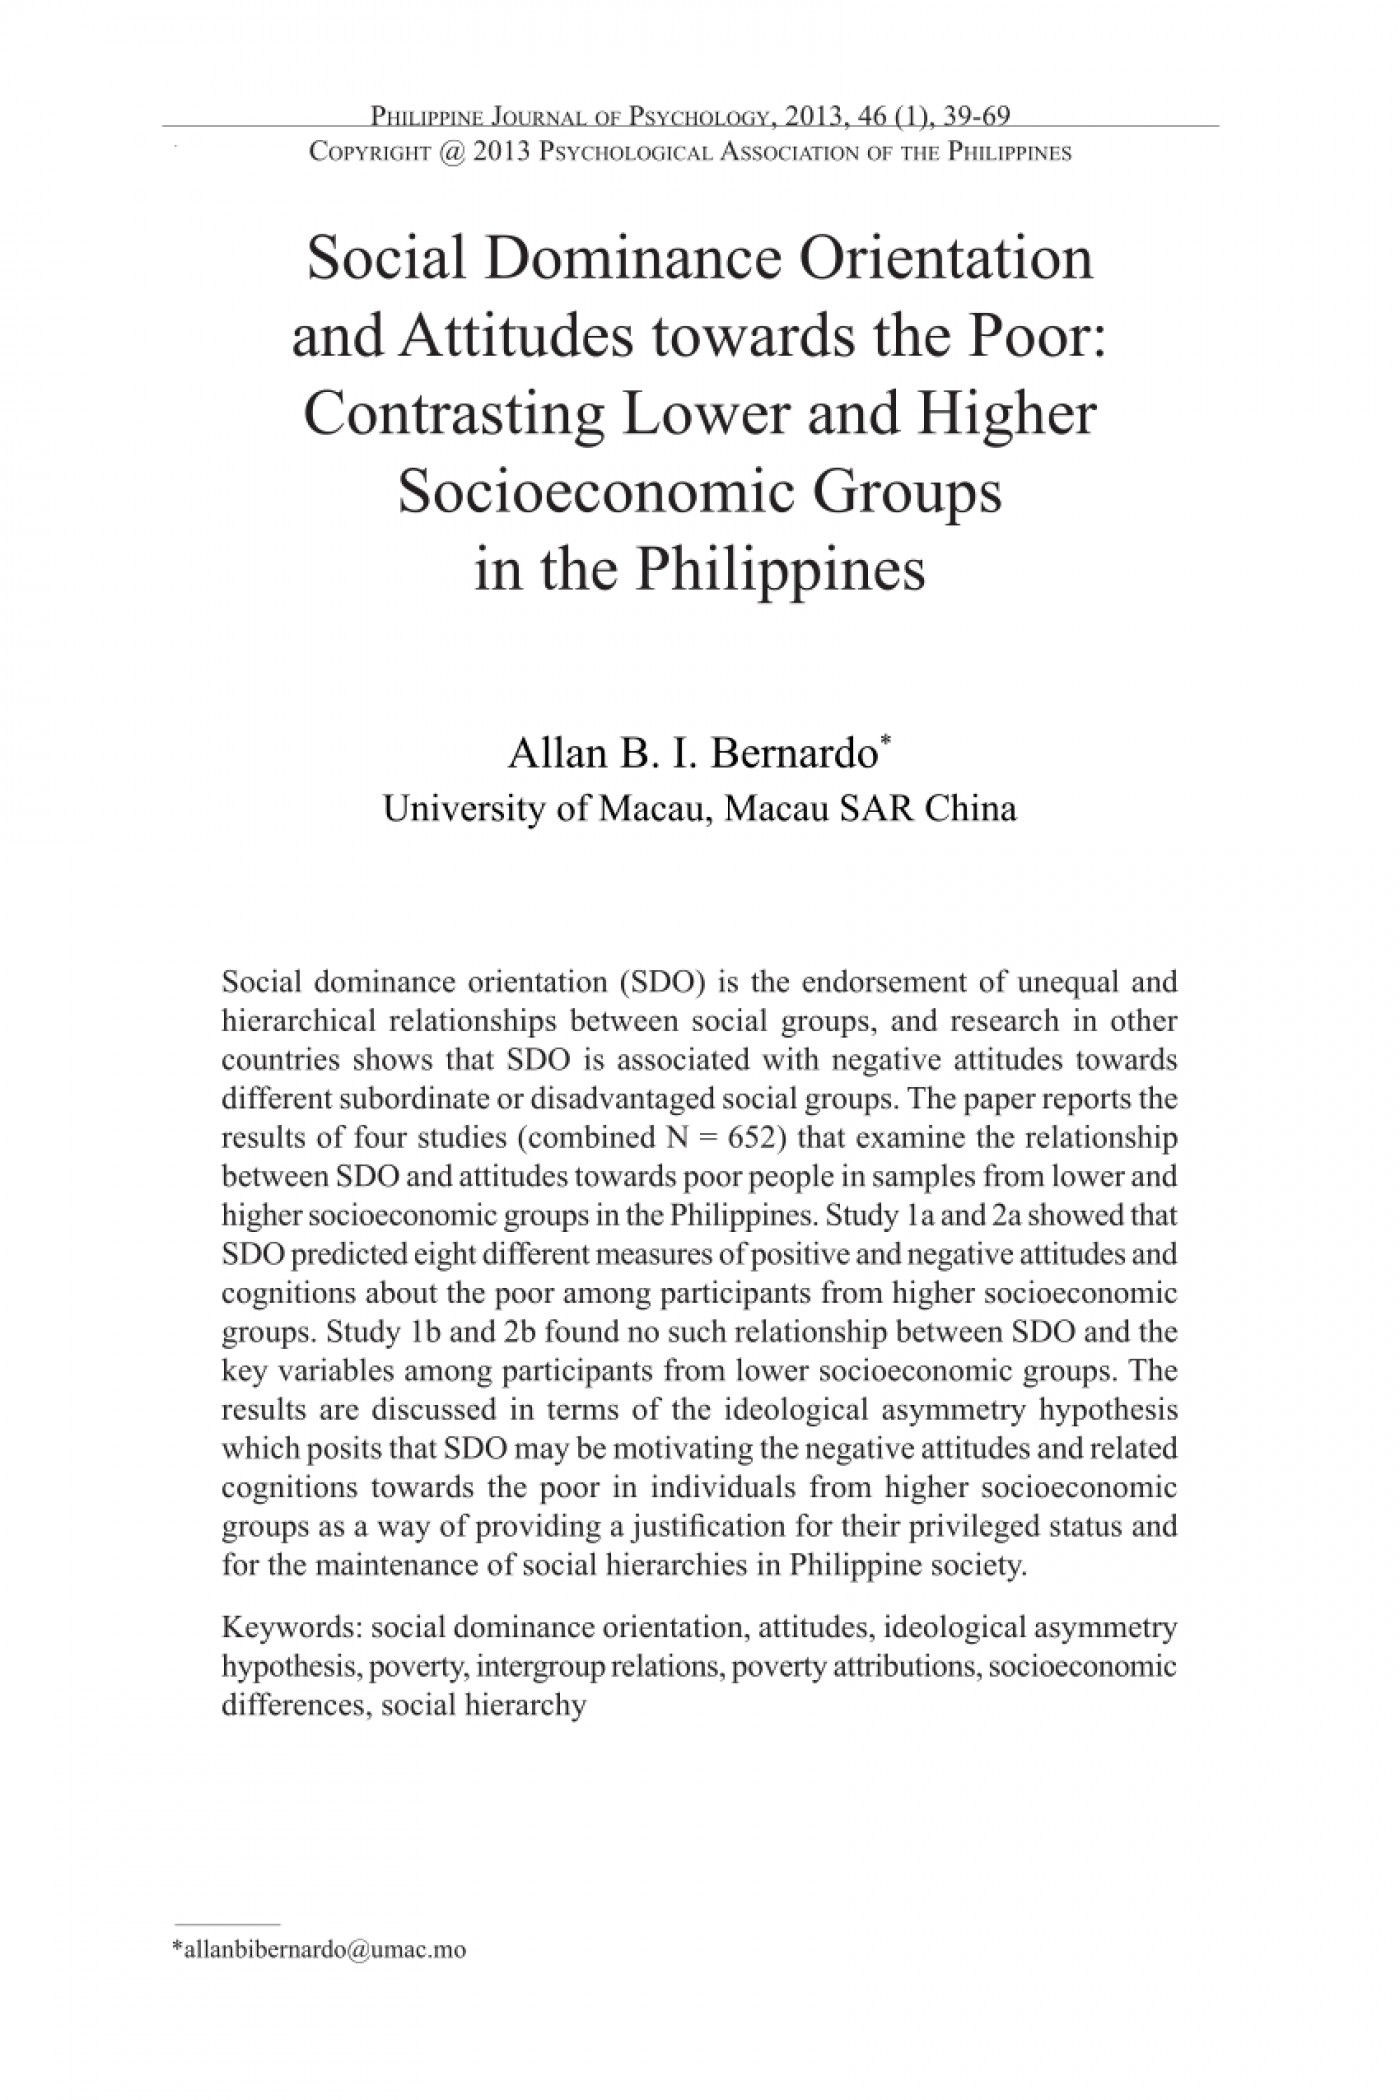 004 Poverty In The Philippines Research Paper Pdf Impressive 1400